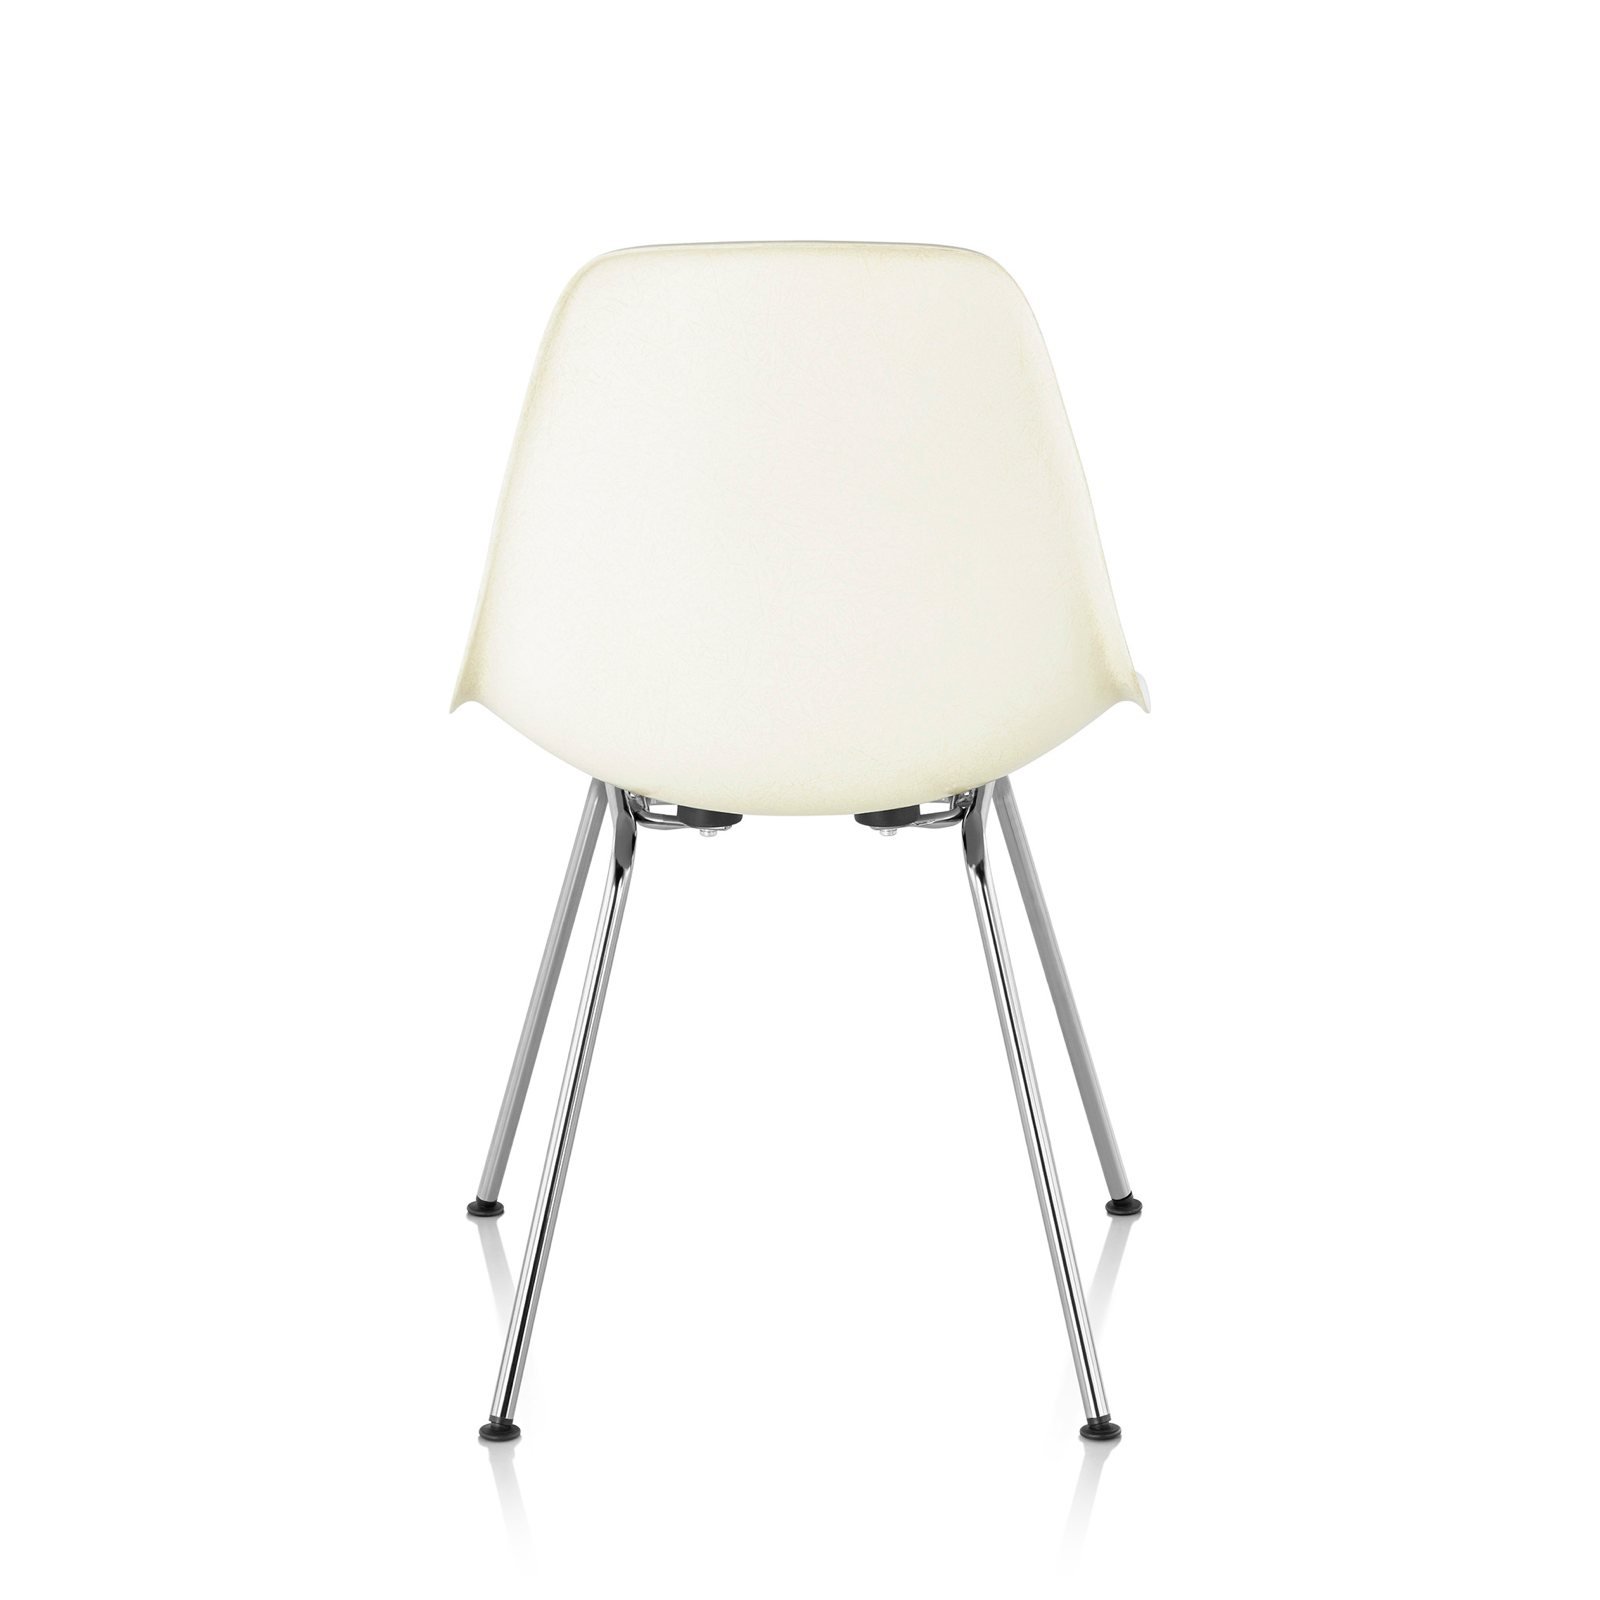 Eames Molded Plastic Side Chair 4 Leg Base, White, Back View.